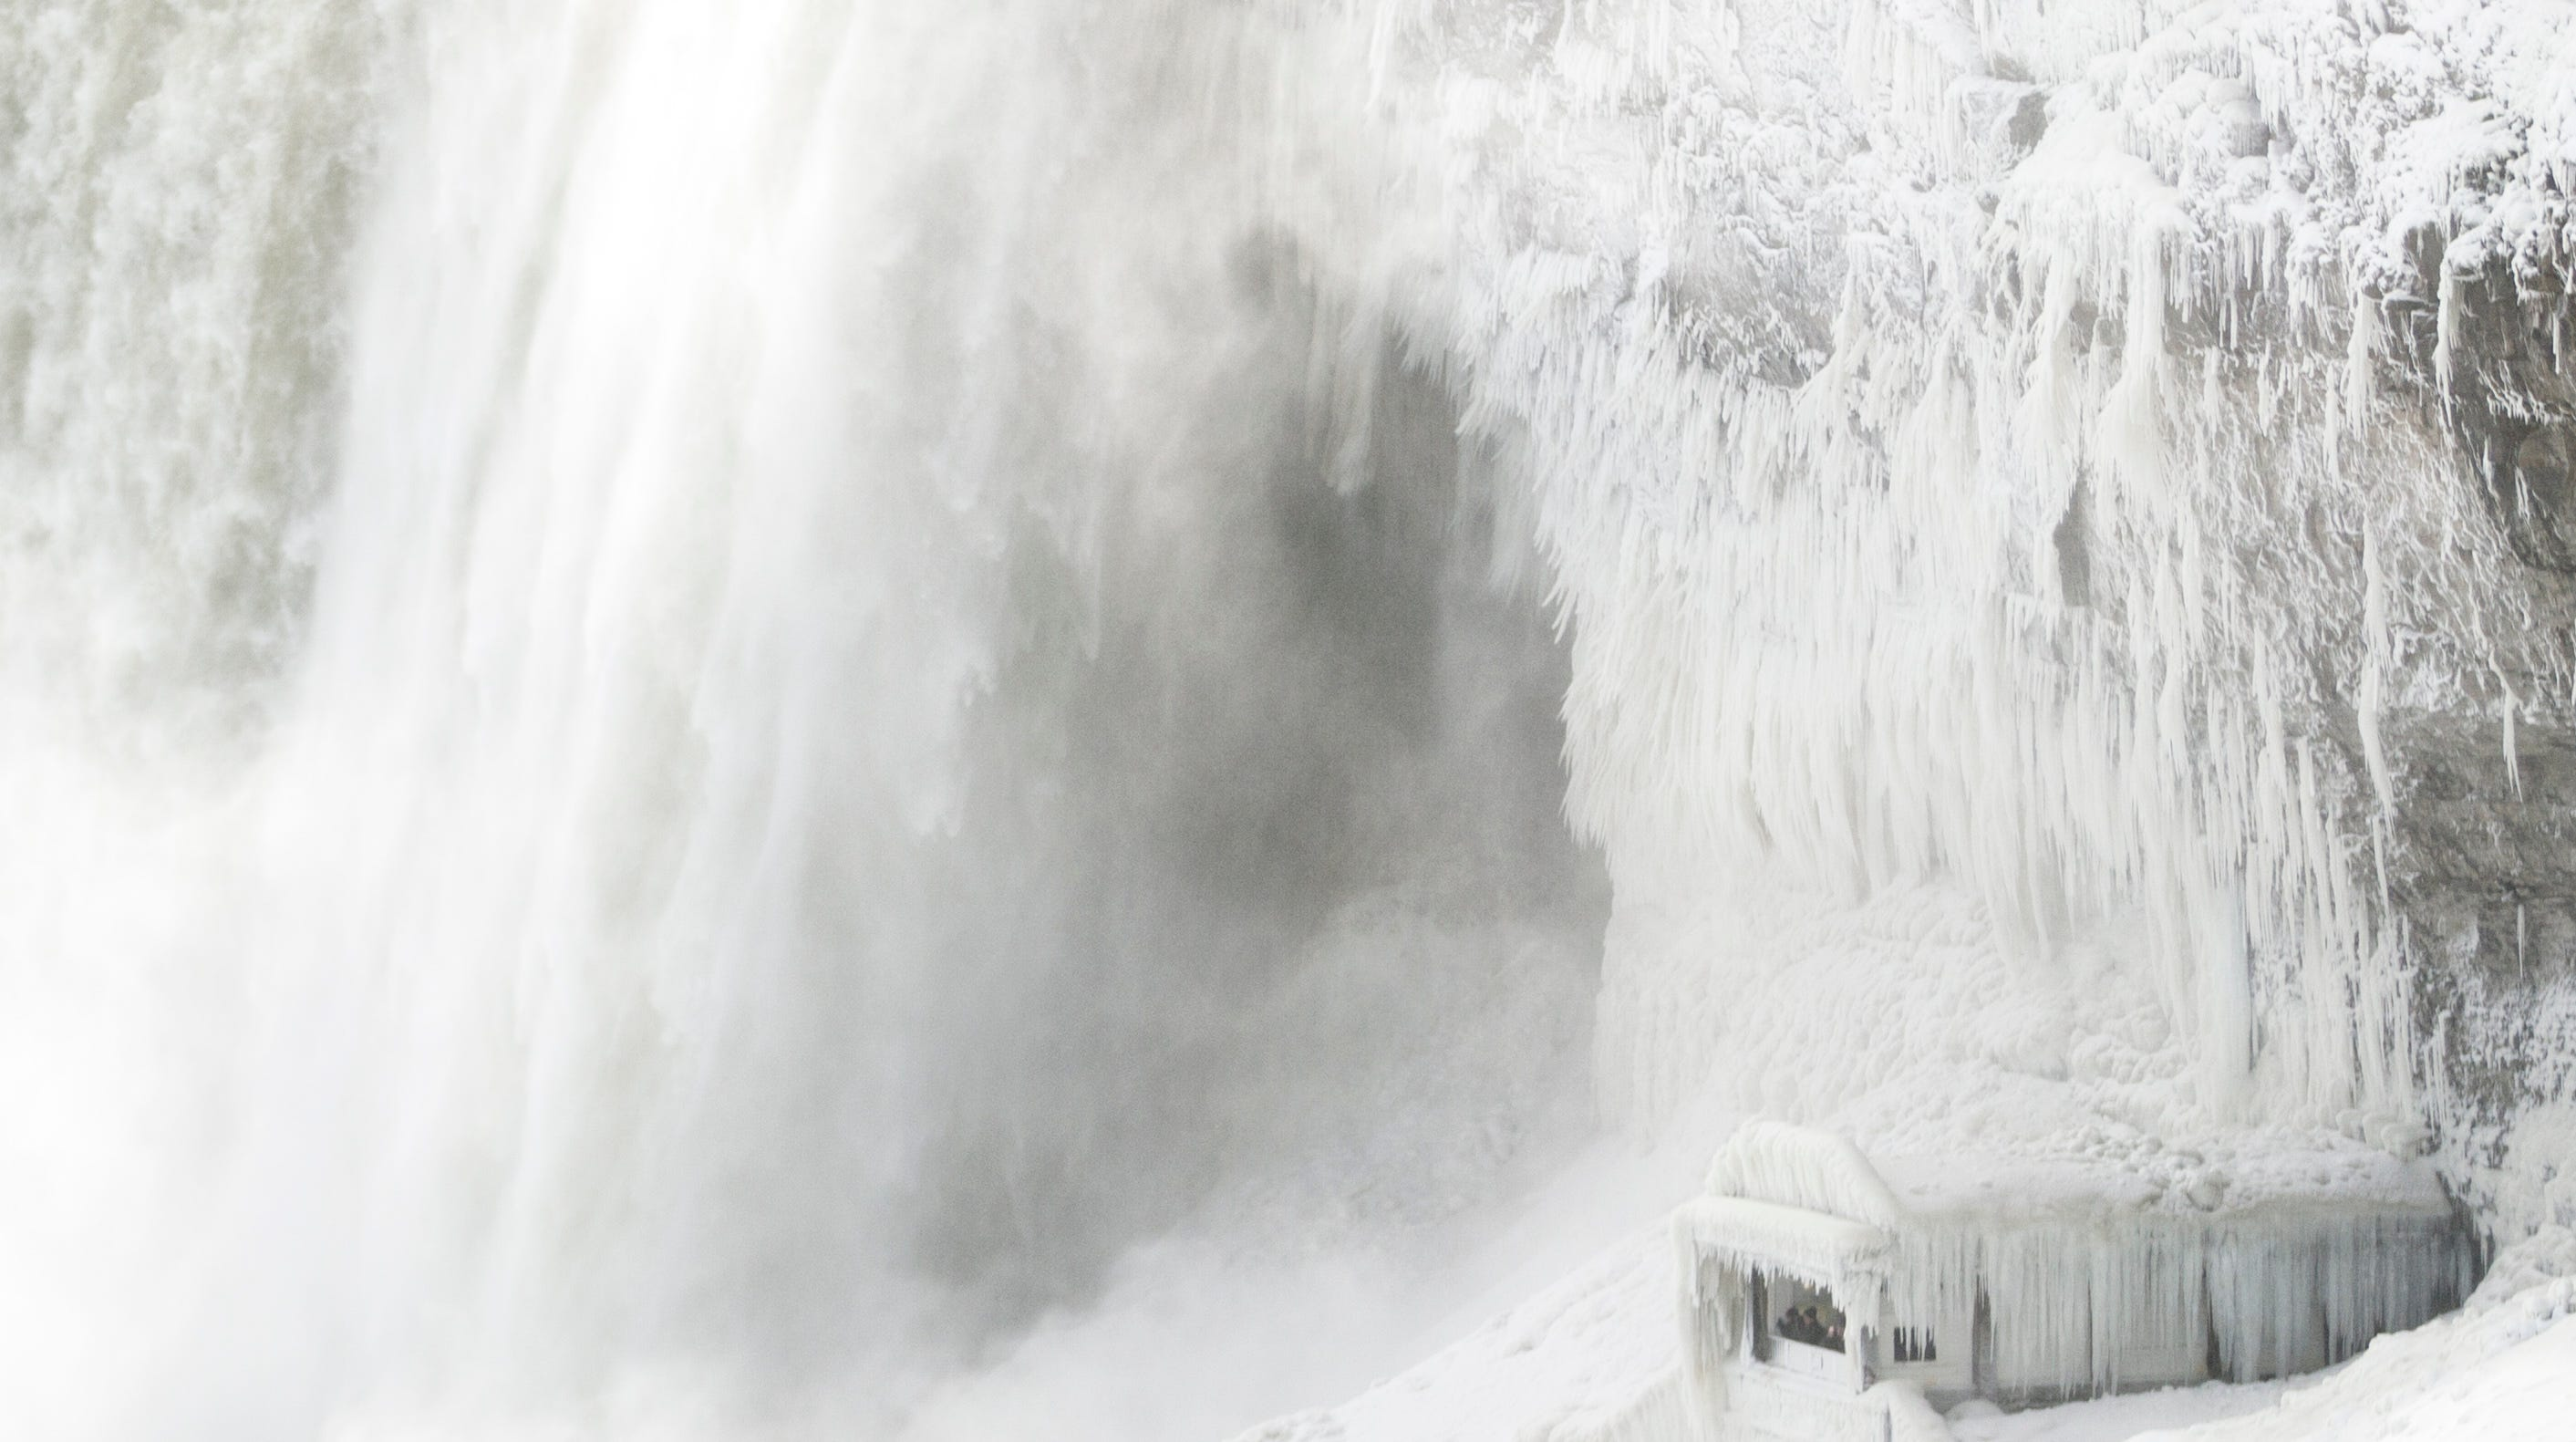 Ice coats the rocks and observation deck at the base of the Horseshoe falls in Niagara Falls, Ontario on January 3, 2018.